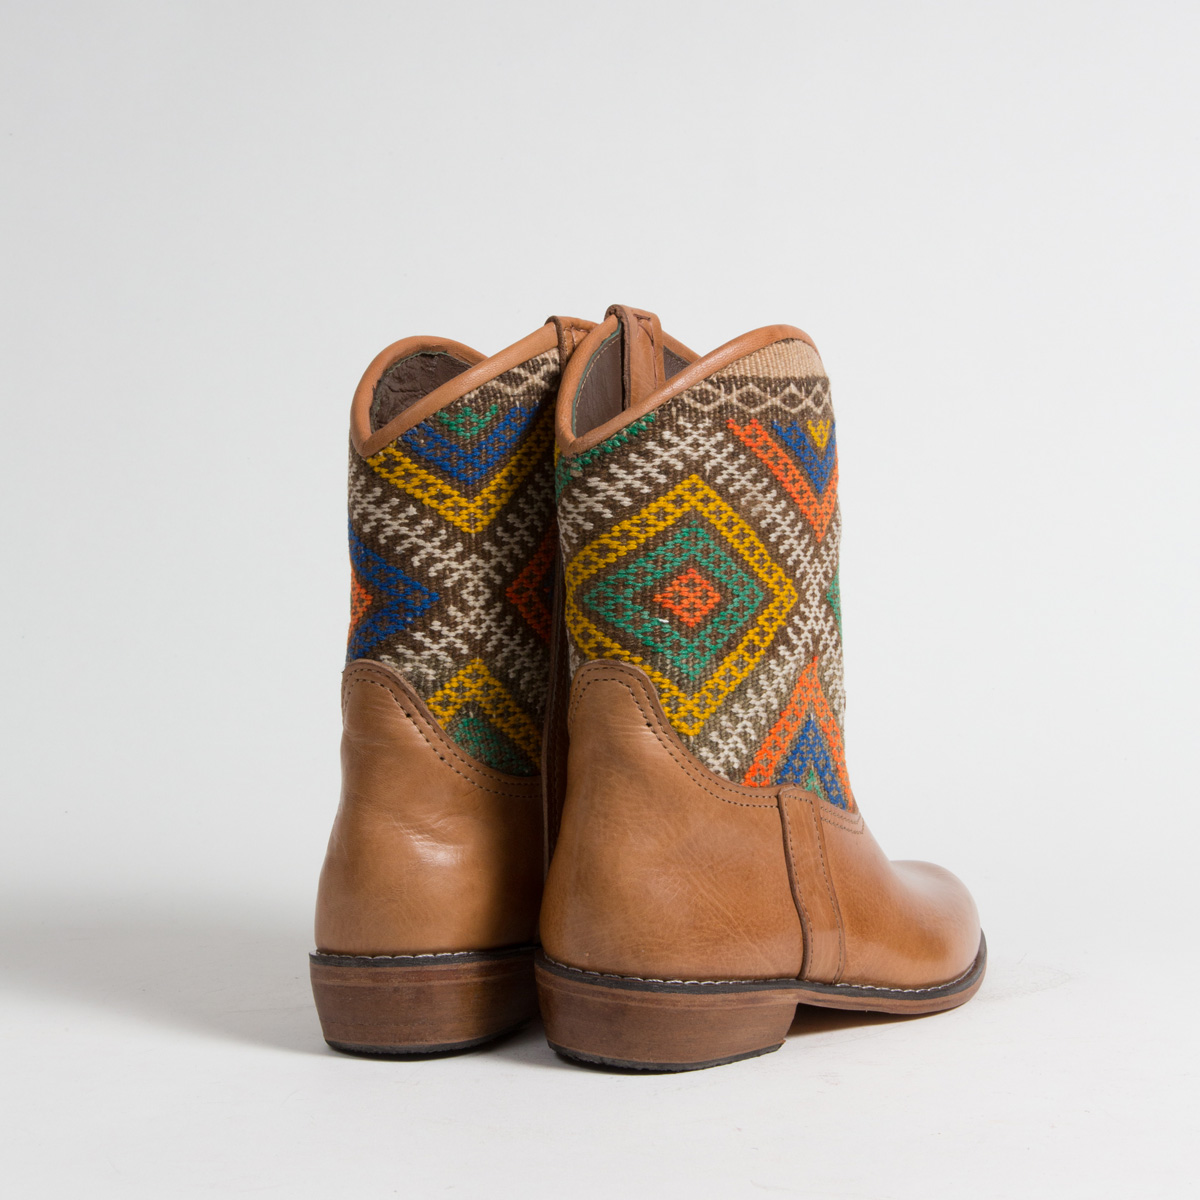 Bottines Kilim cuir mababouche artisanales (Réf. P5-38)